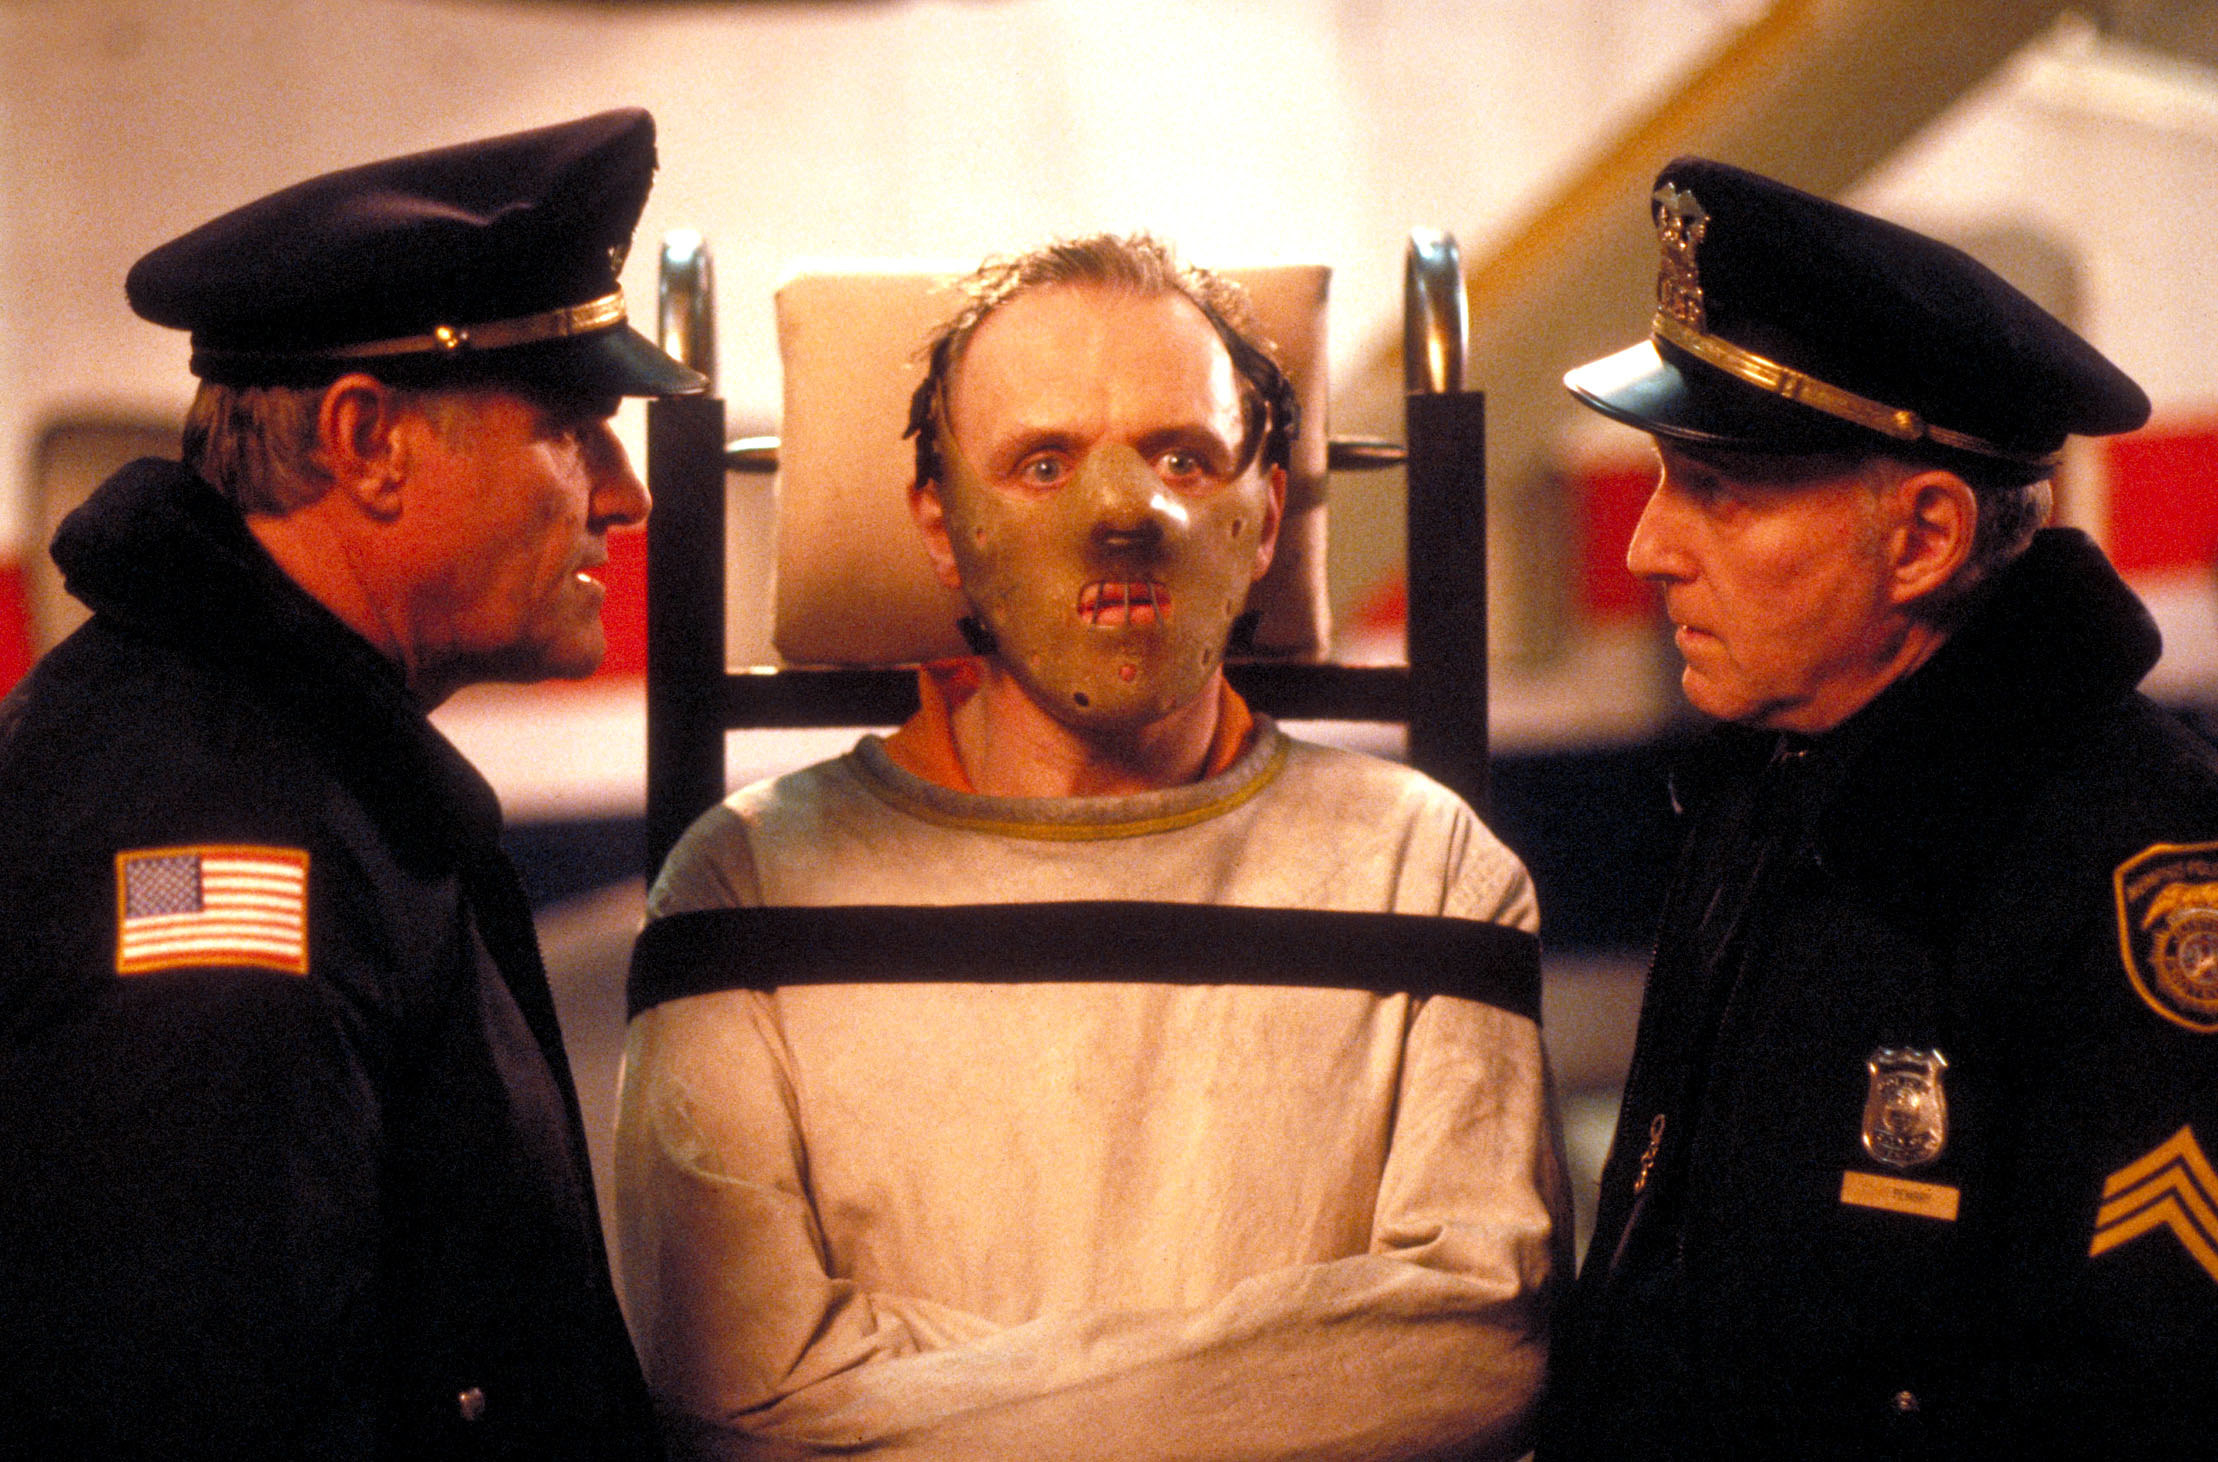 Dr. Lecter strapped onto a gurney in a straight jacket and a hockey mask to prevent him from biting